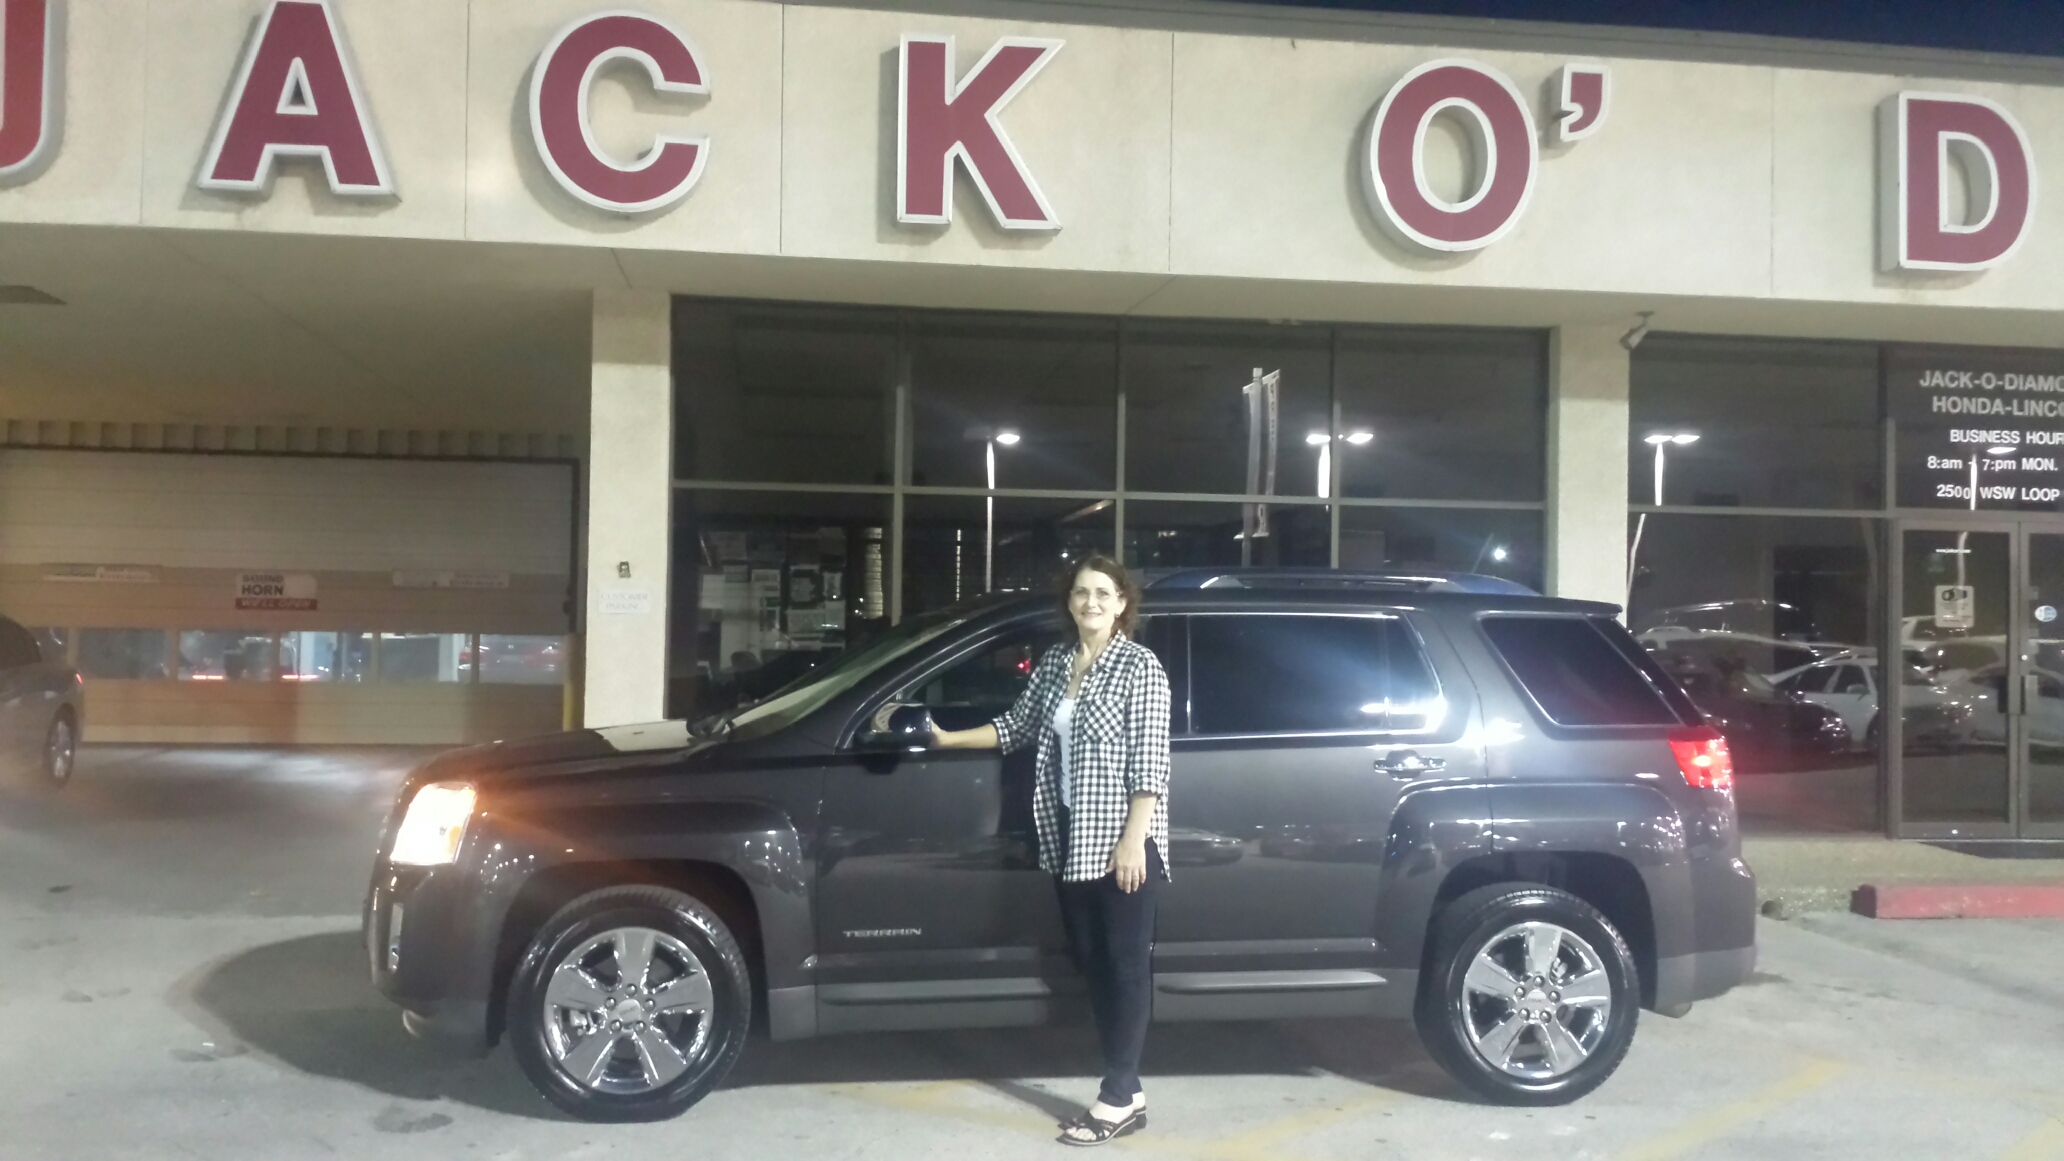 Congratulations to Mrs. Kim Dean from Henderson on her 2014 GMC Terrain!